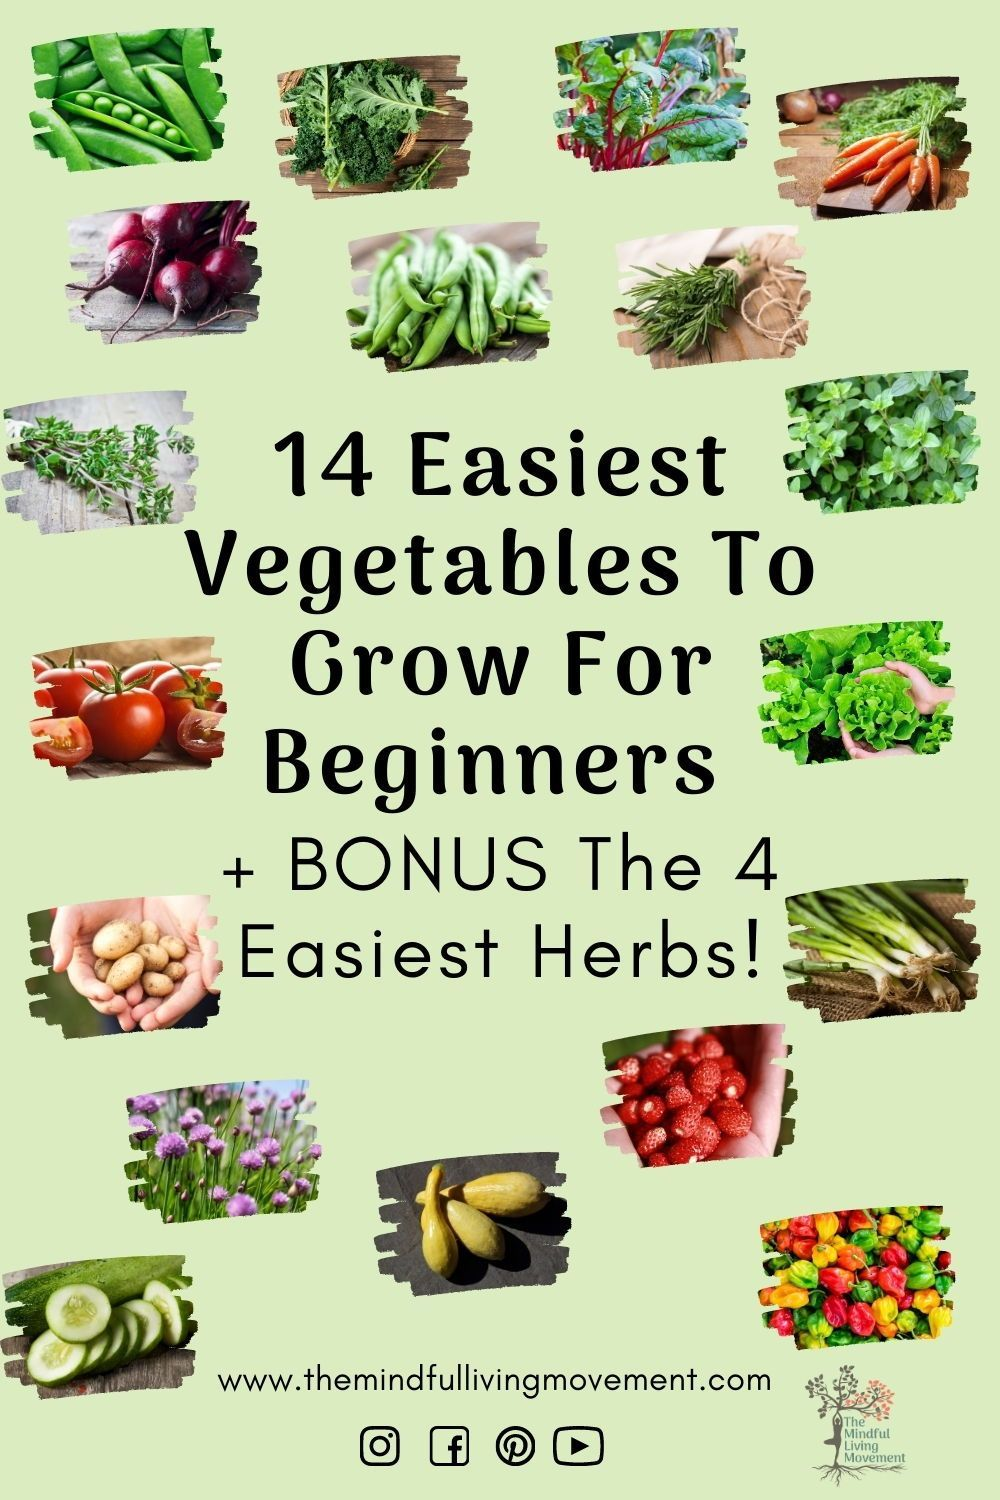 I narrowed it down to 14 vegetables and 4 herbs to give you a large selection of options to choose from to start your garden. #beginnergardener #urbangardening #growyourownfood #howtogarden #easygardening #gardentips #gardenideas #diygarden #canadiangardening #kidsgardening#gardenblog